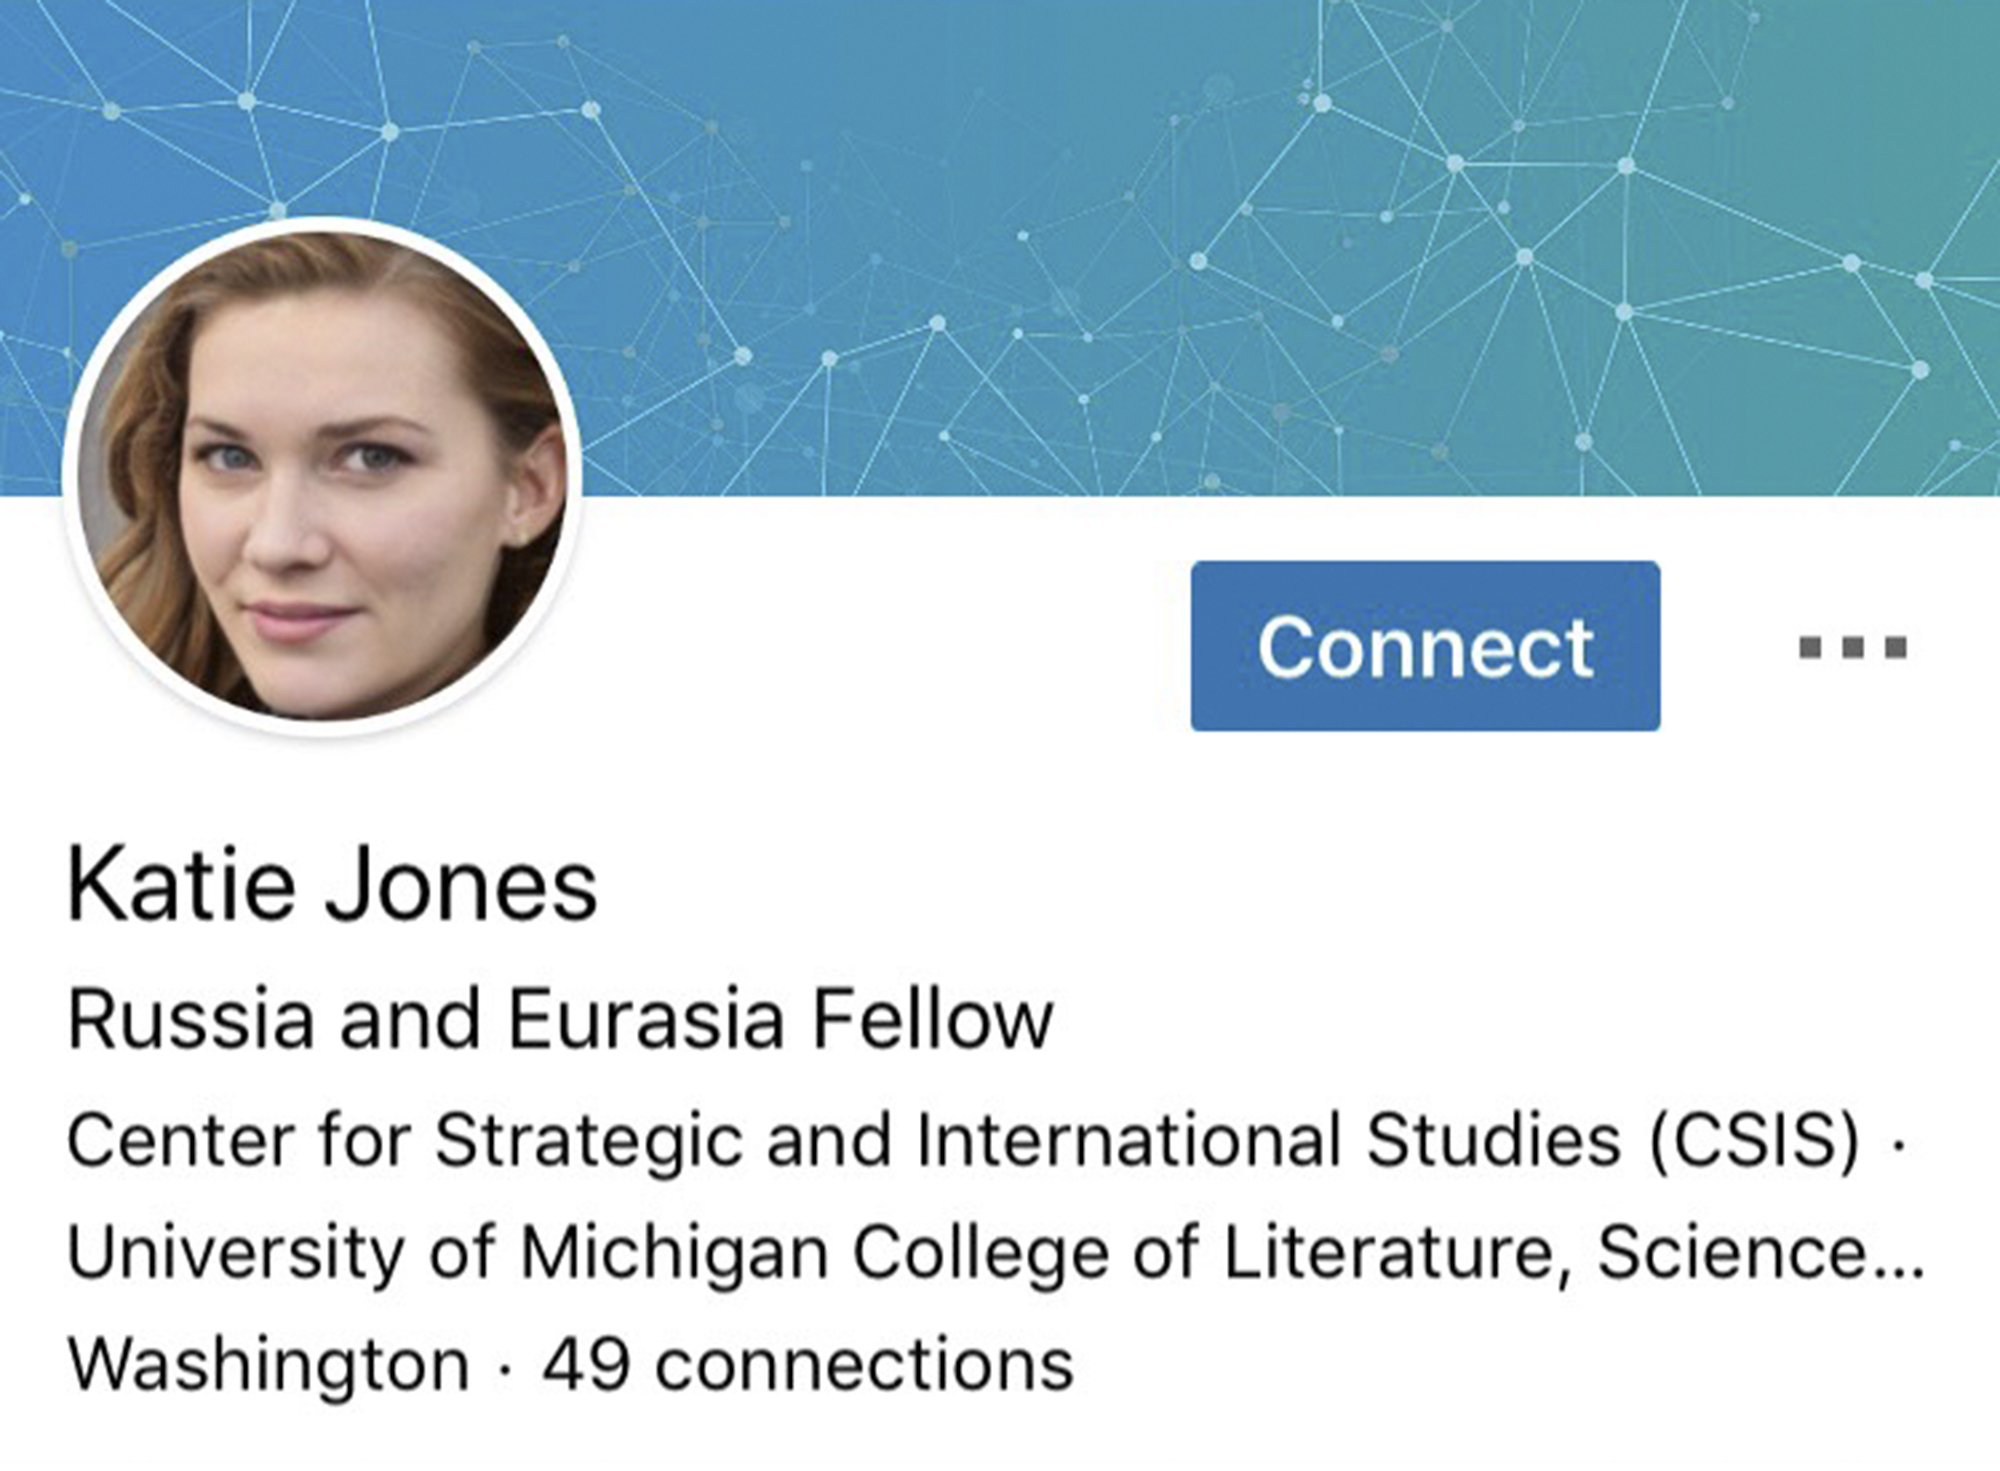 Fake Profile Of Russia And Eurasia Fellow With AI-Generated Face Discovered On LinkedIn